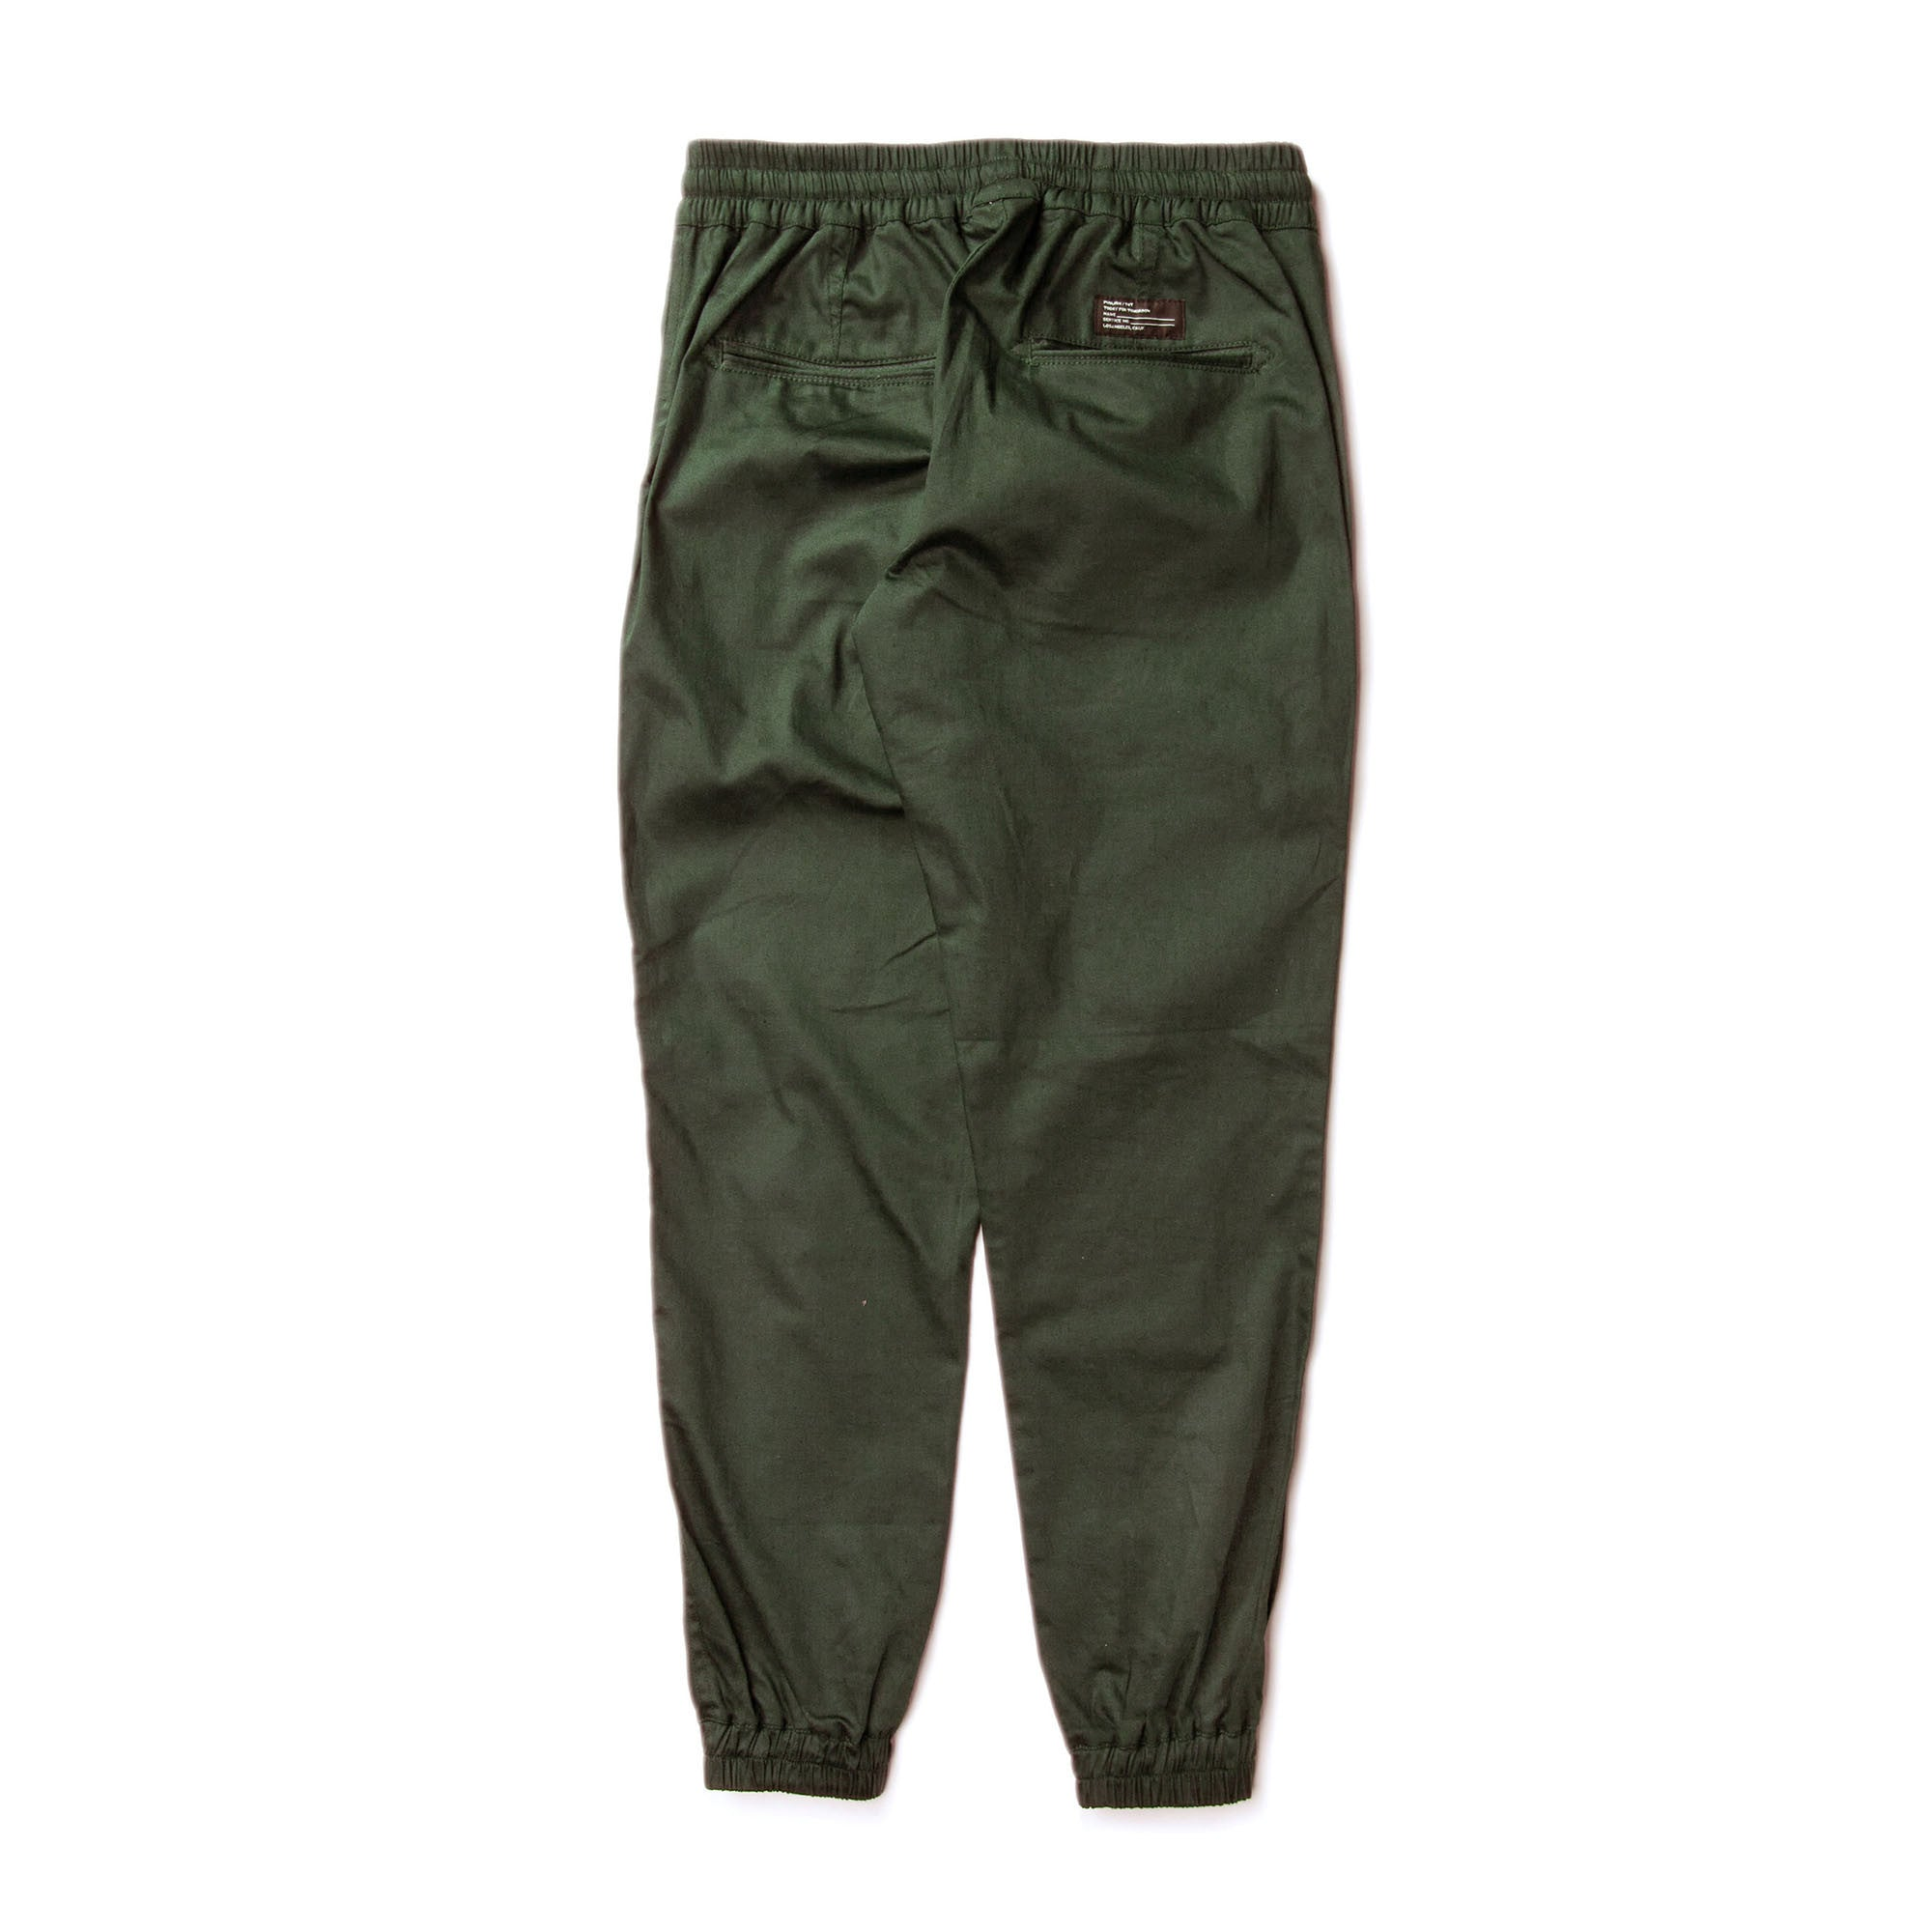 Publish Sprinter Jogger - Olive-Apparels-Navy Selected Shop